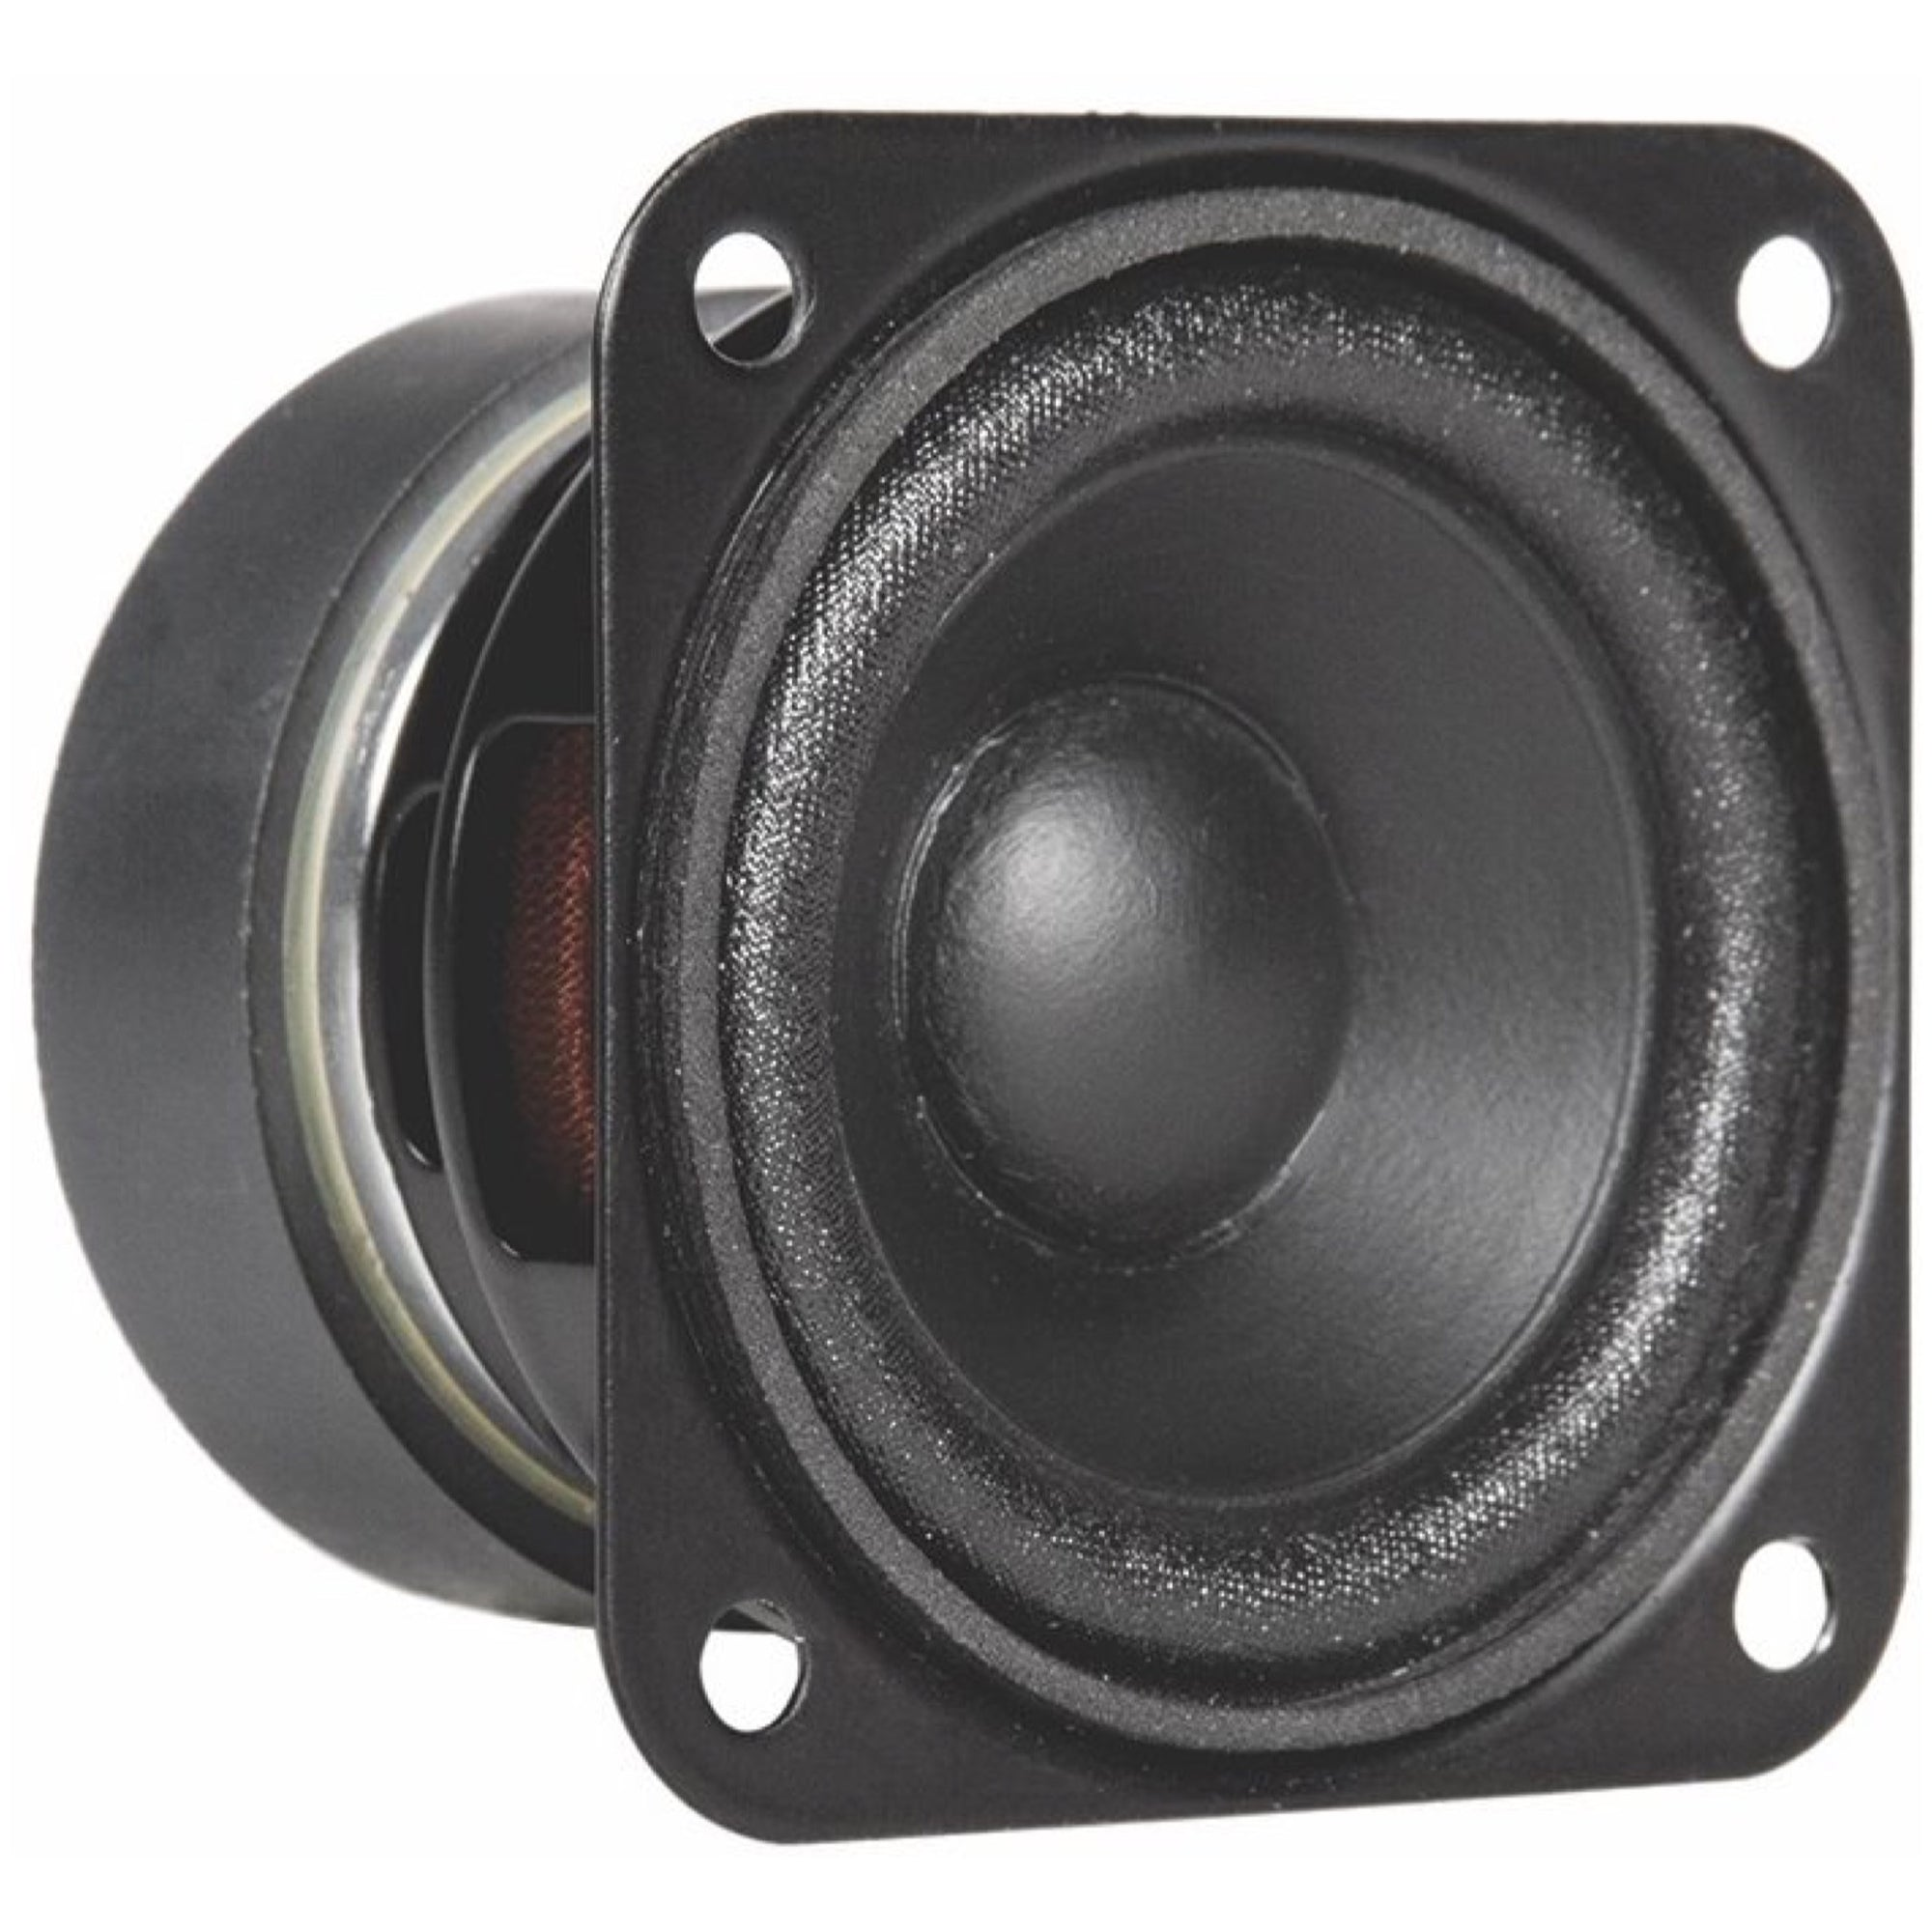 Eminence Alpha 2-8 Speaker (2 Inch, 30 Watts), 4-Pack, 8 Ohms